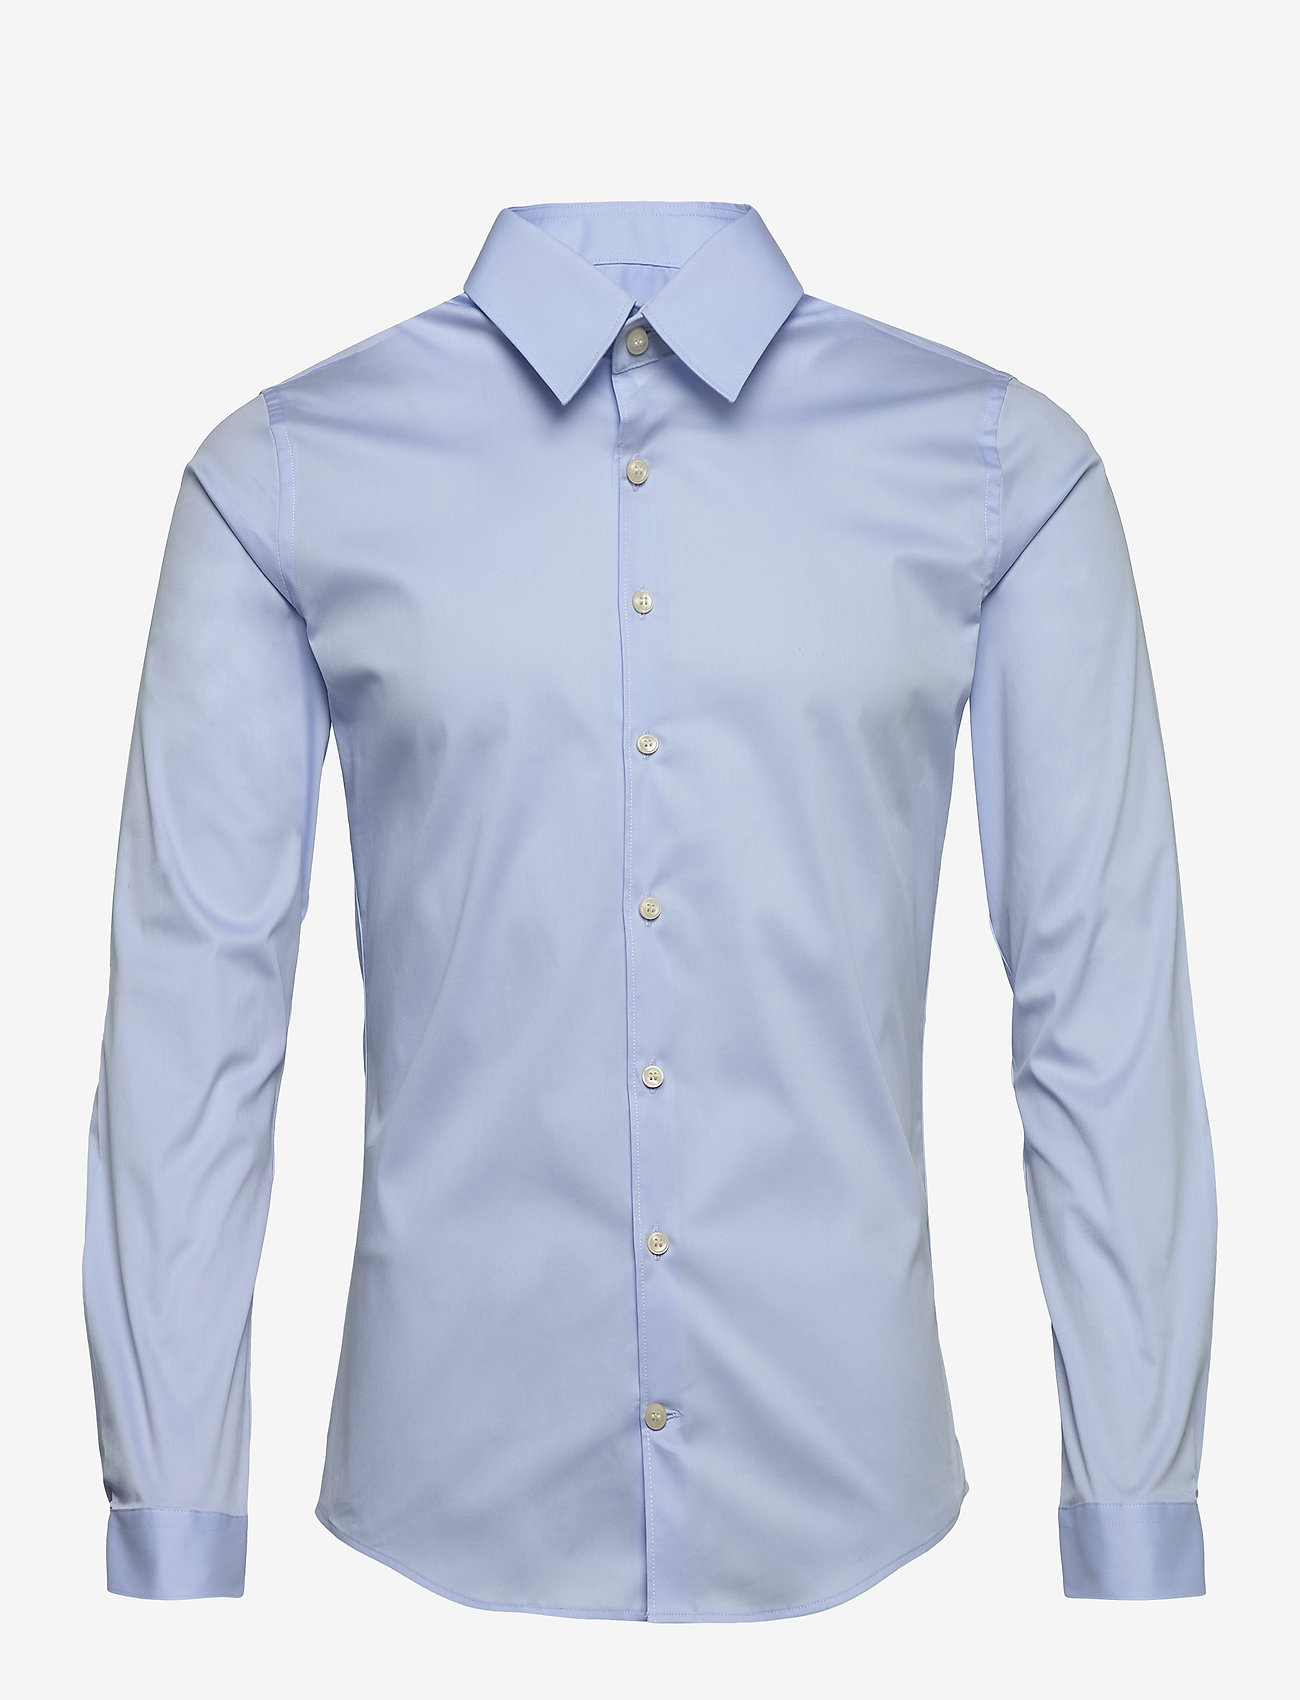 Tiger of Sweden - FILBRODIE - basic skjorter - pale blue - 0